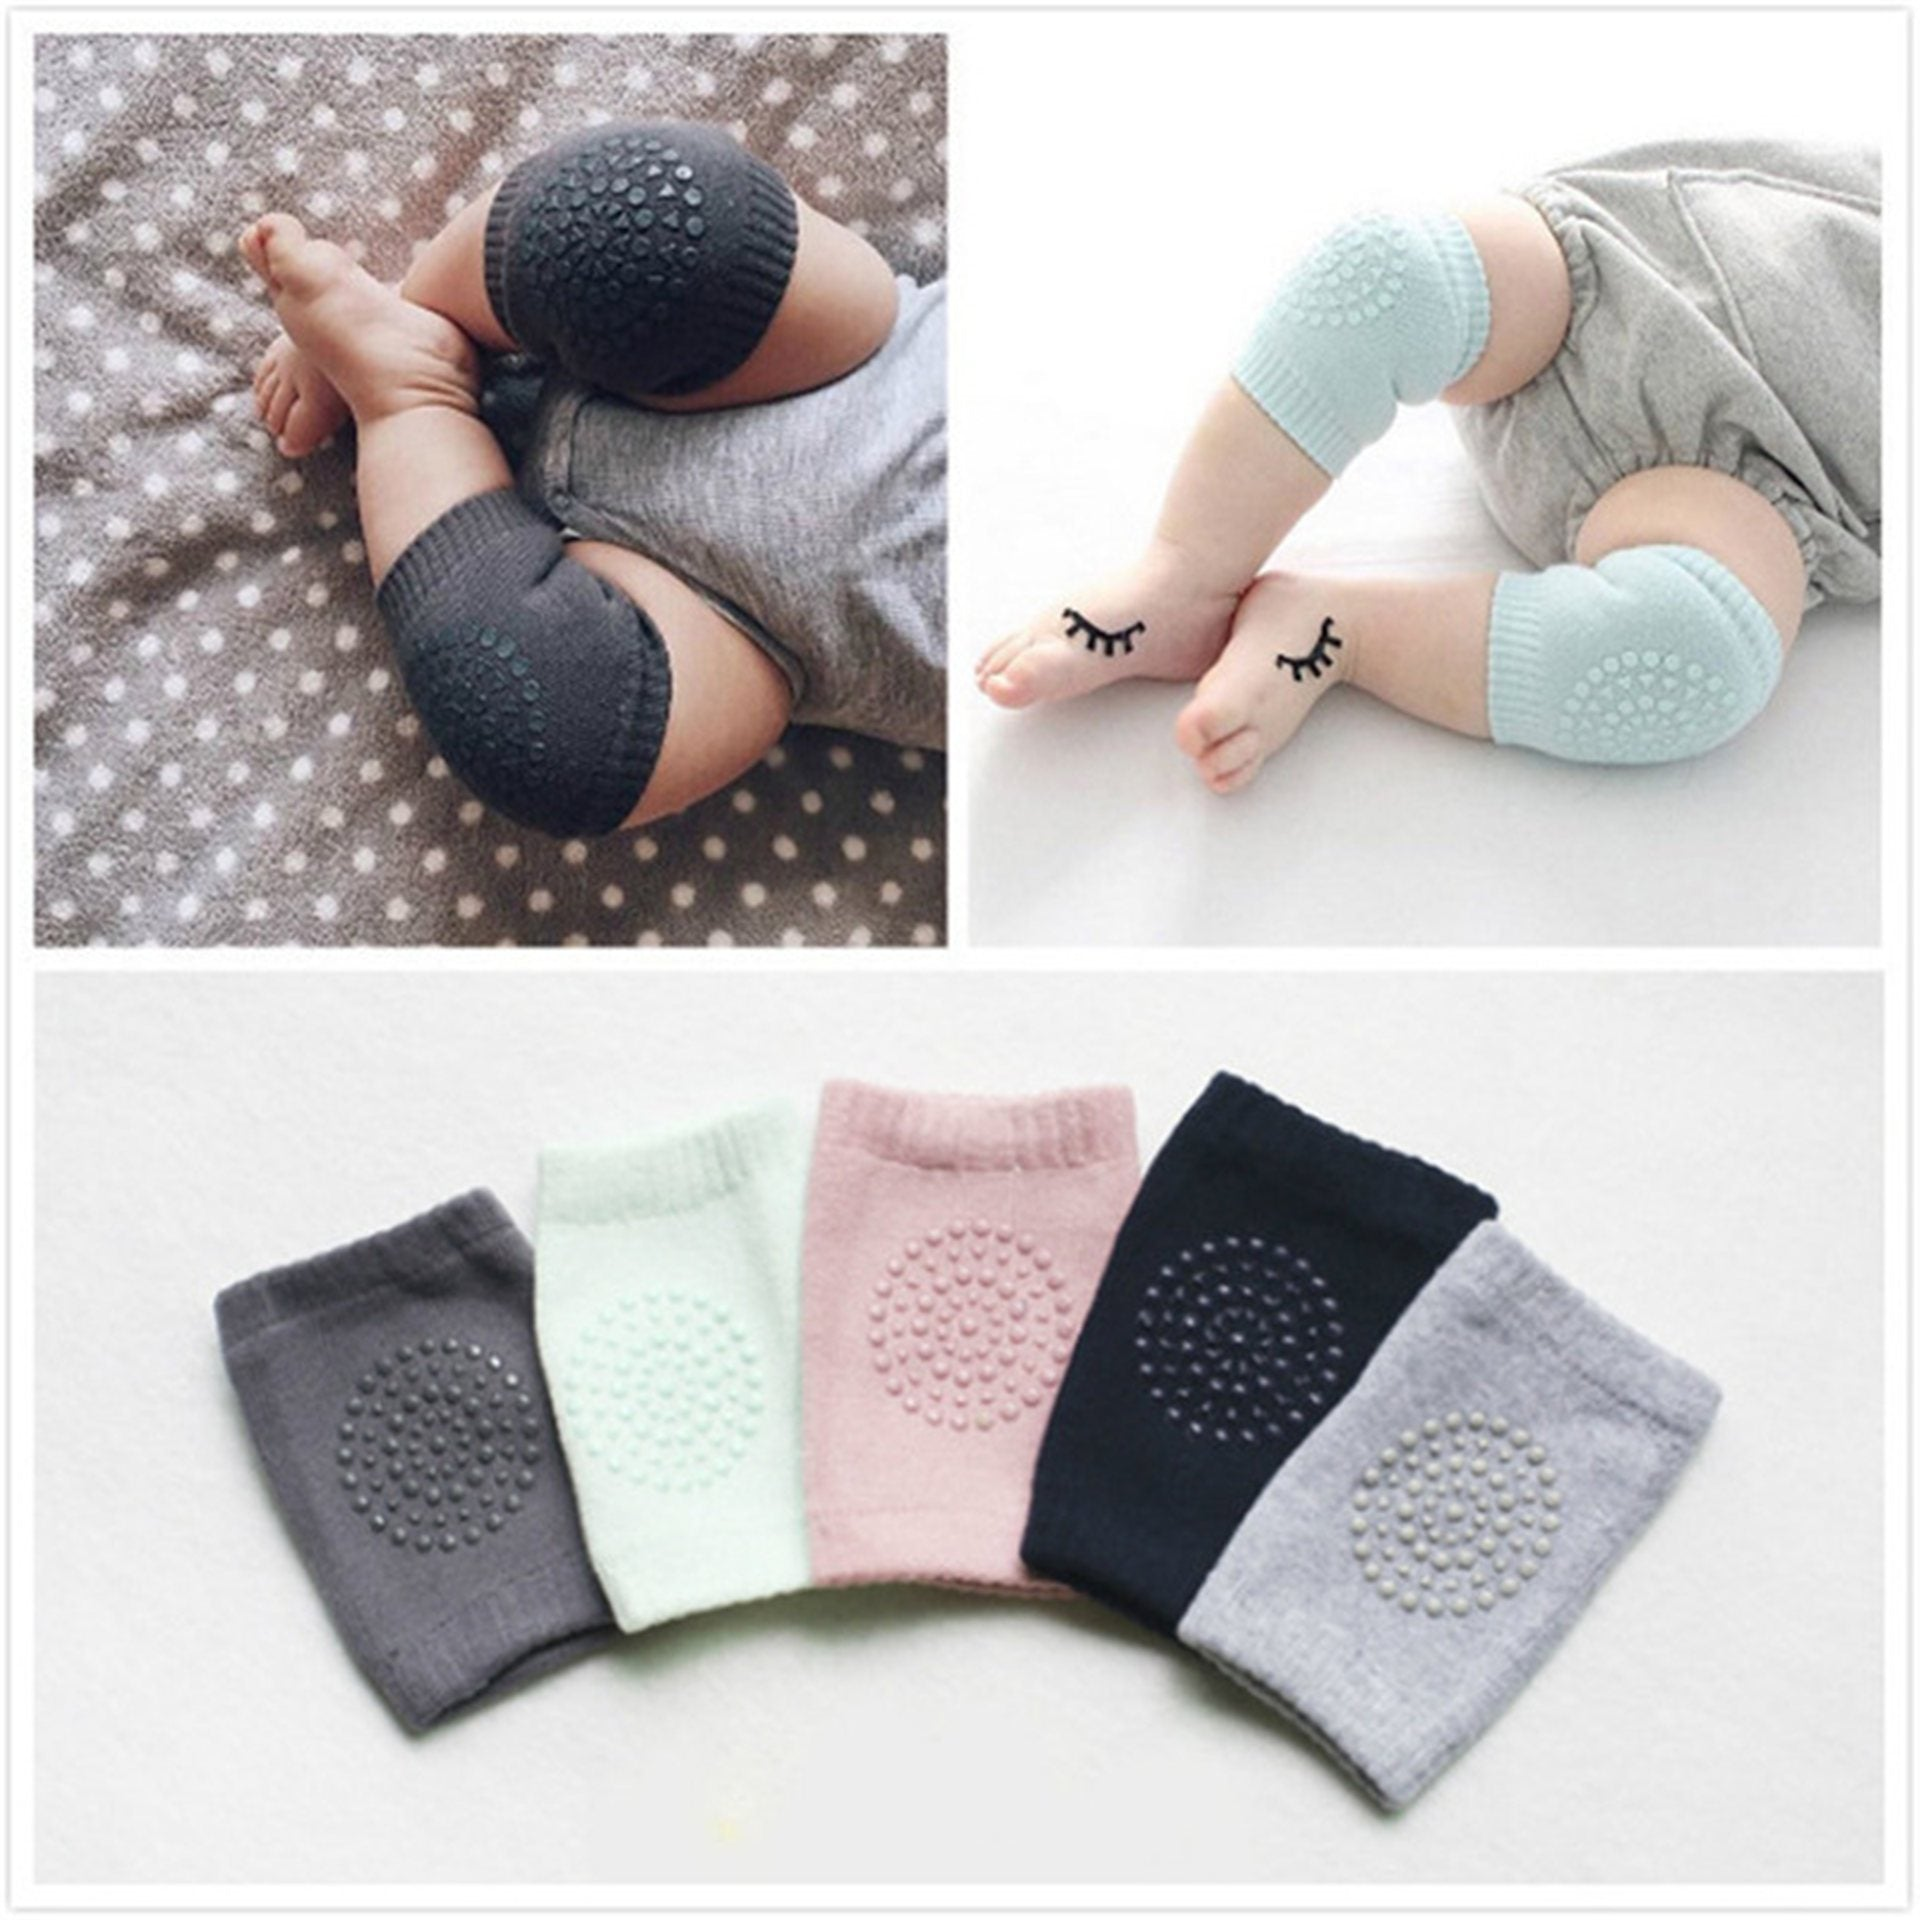 Knee protector is present for the baby